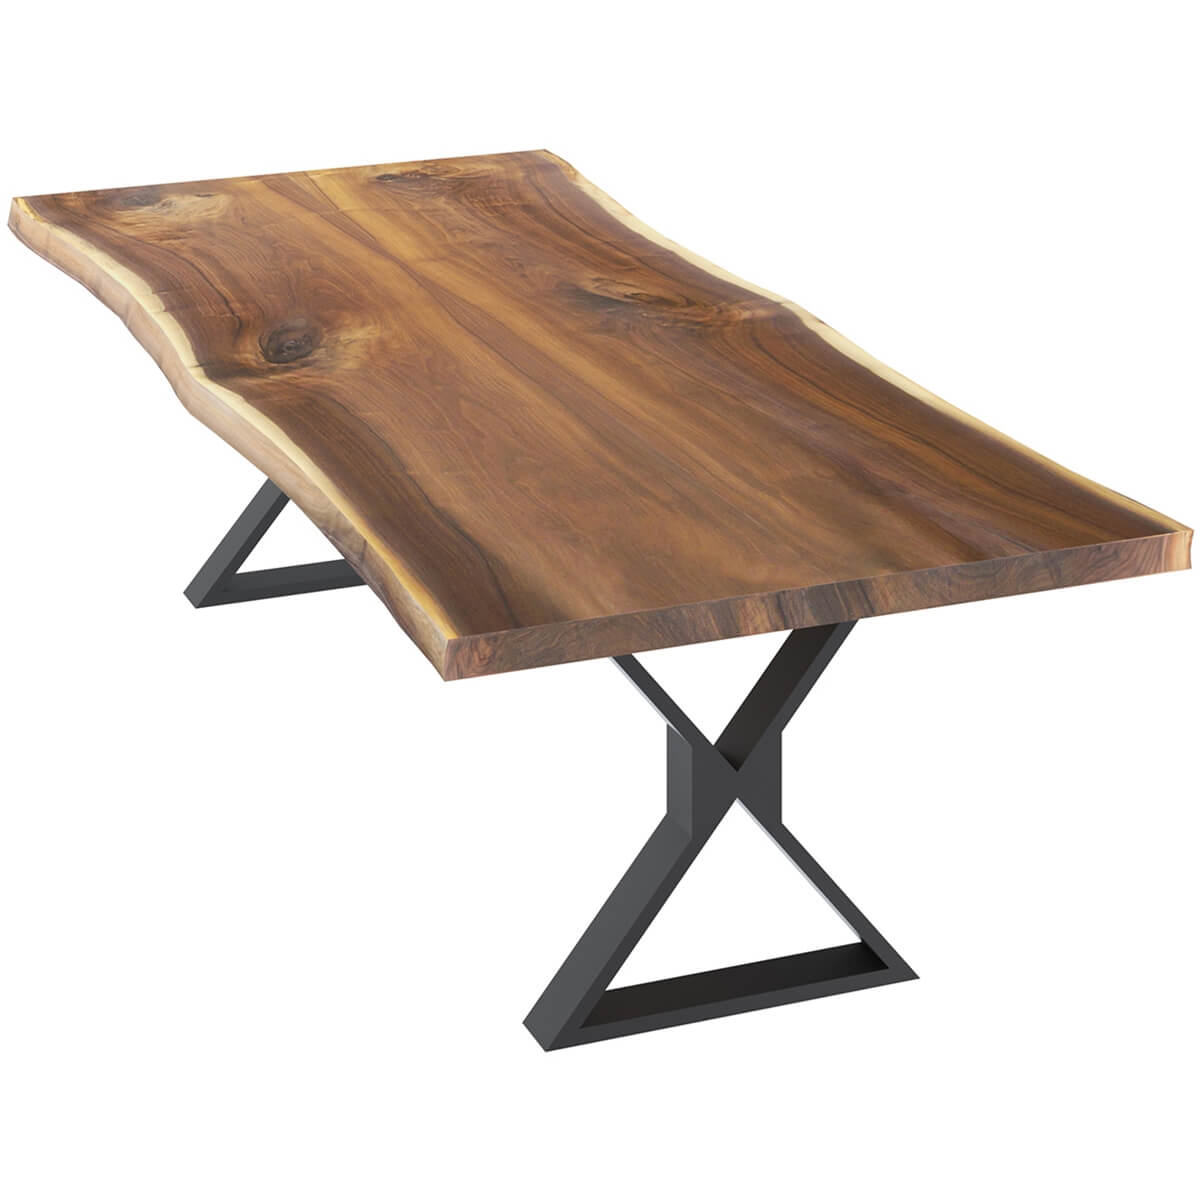 Laconia Solid Wood Handcrafted Live Edge Dining Table